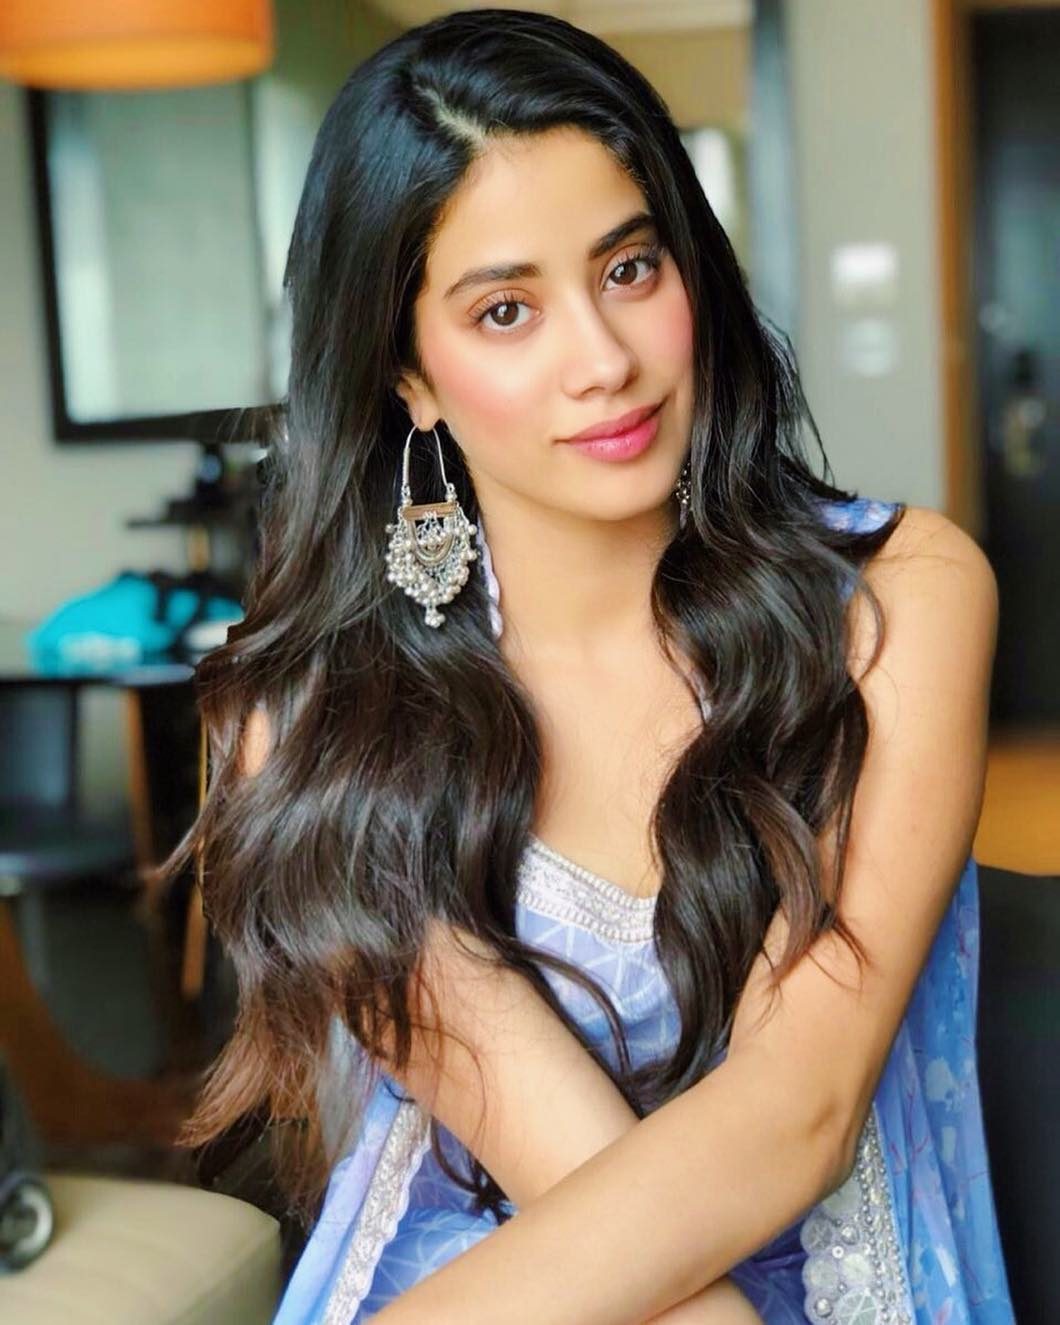 janhvi-kapoor-birthday-best-beauty-makeup-looks %283%29